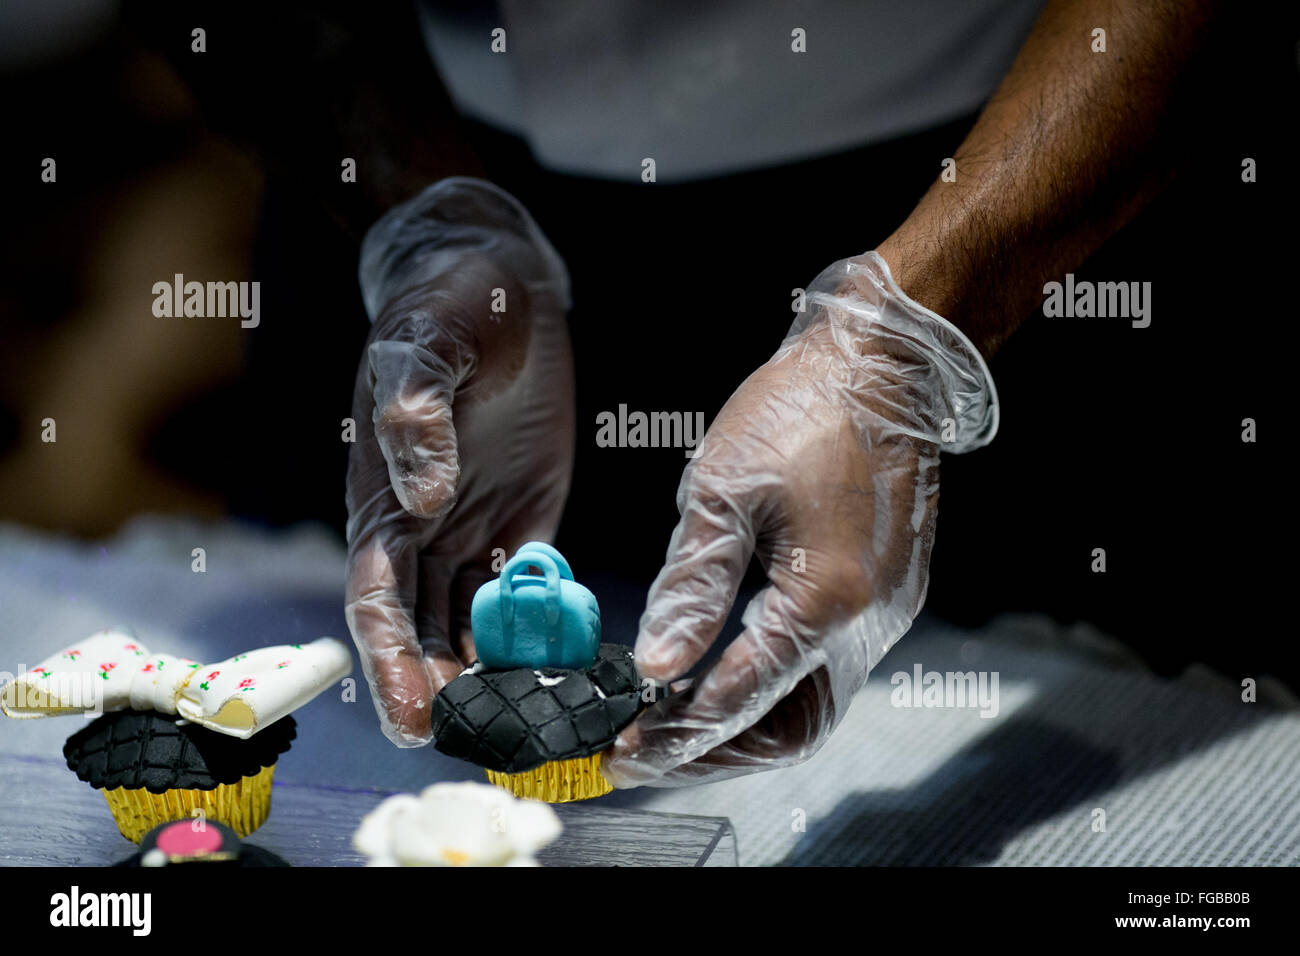 Cropped Image Of Hand Decorating Cupcakes - Stock Image